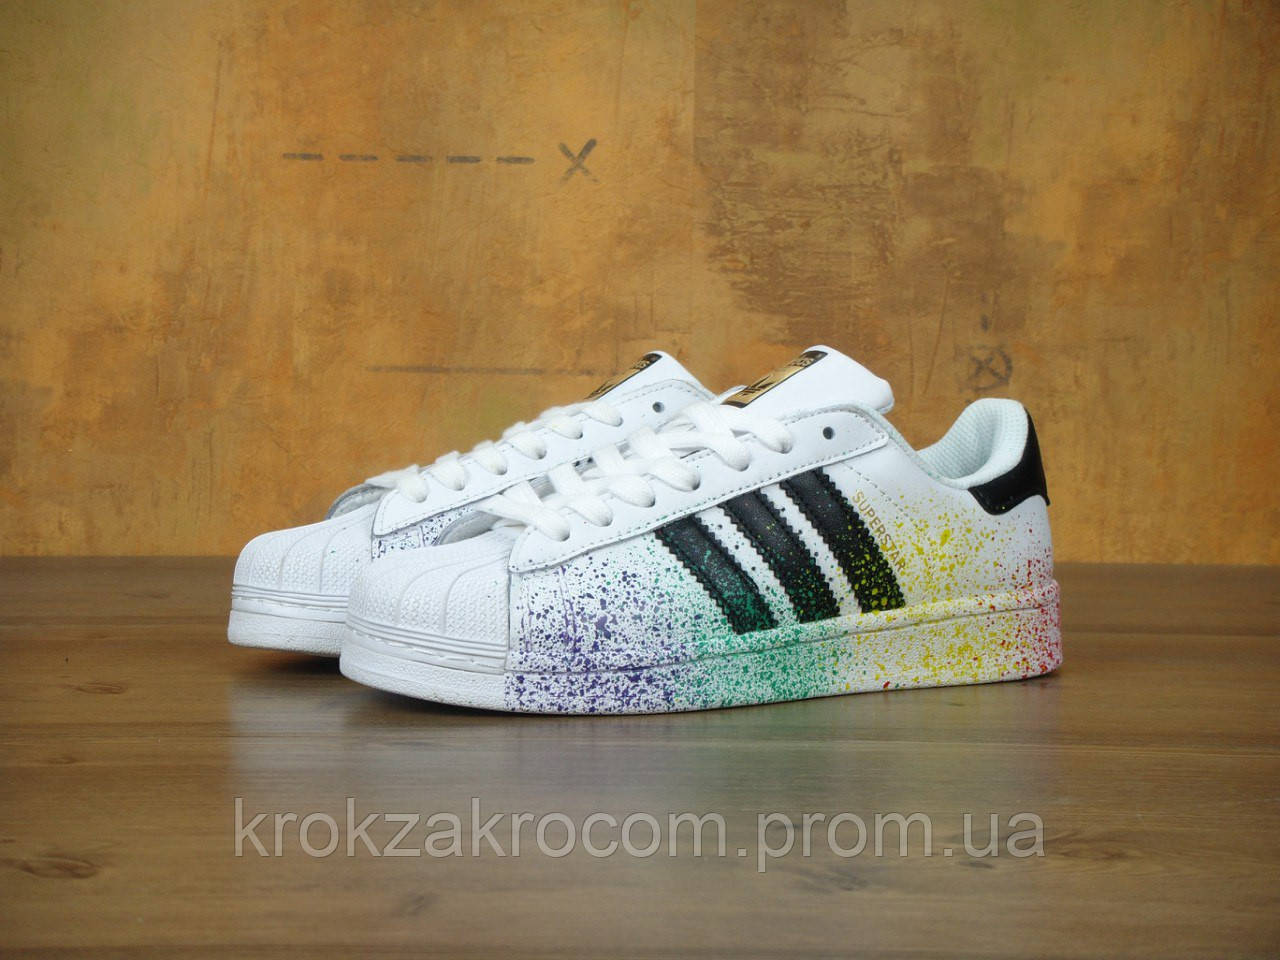 cosecha evidencia Creyente  Кроссовки adidas superstar replica AAA, цена 1 250 грн., купить Львів —  Prom.ua (ID#519004829)